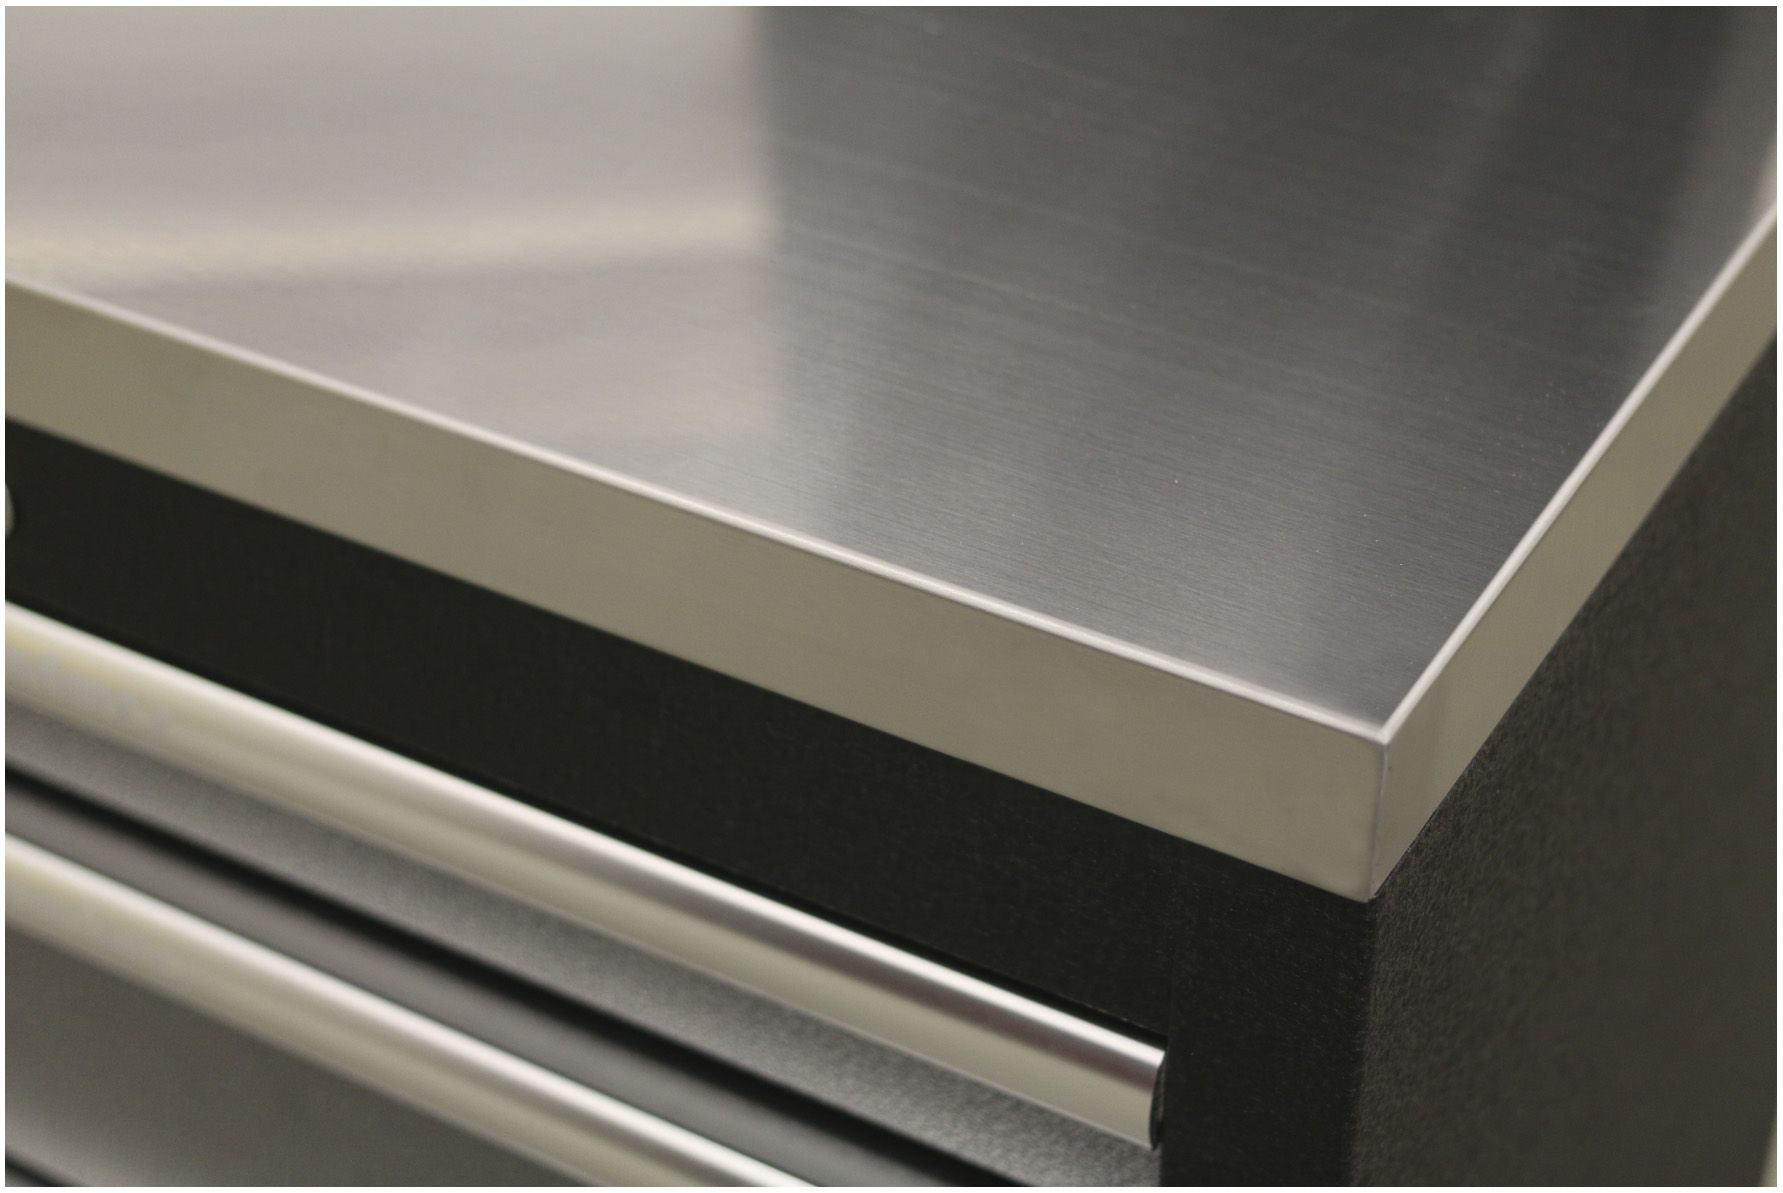 Sealey Superline Pro Stainless Steel Worktop 680mm